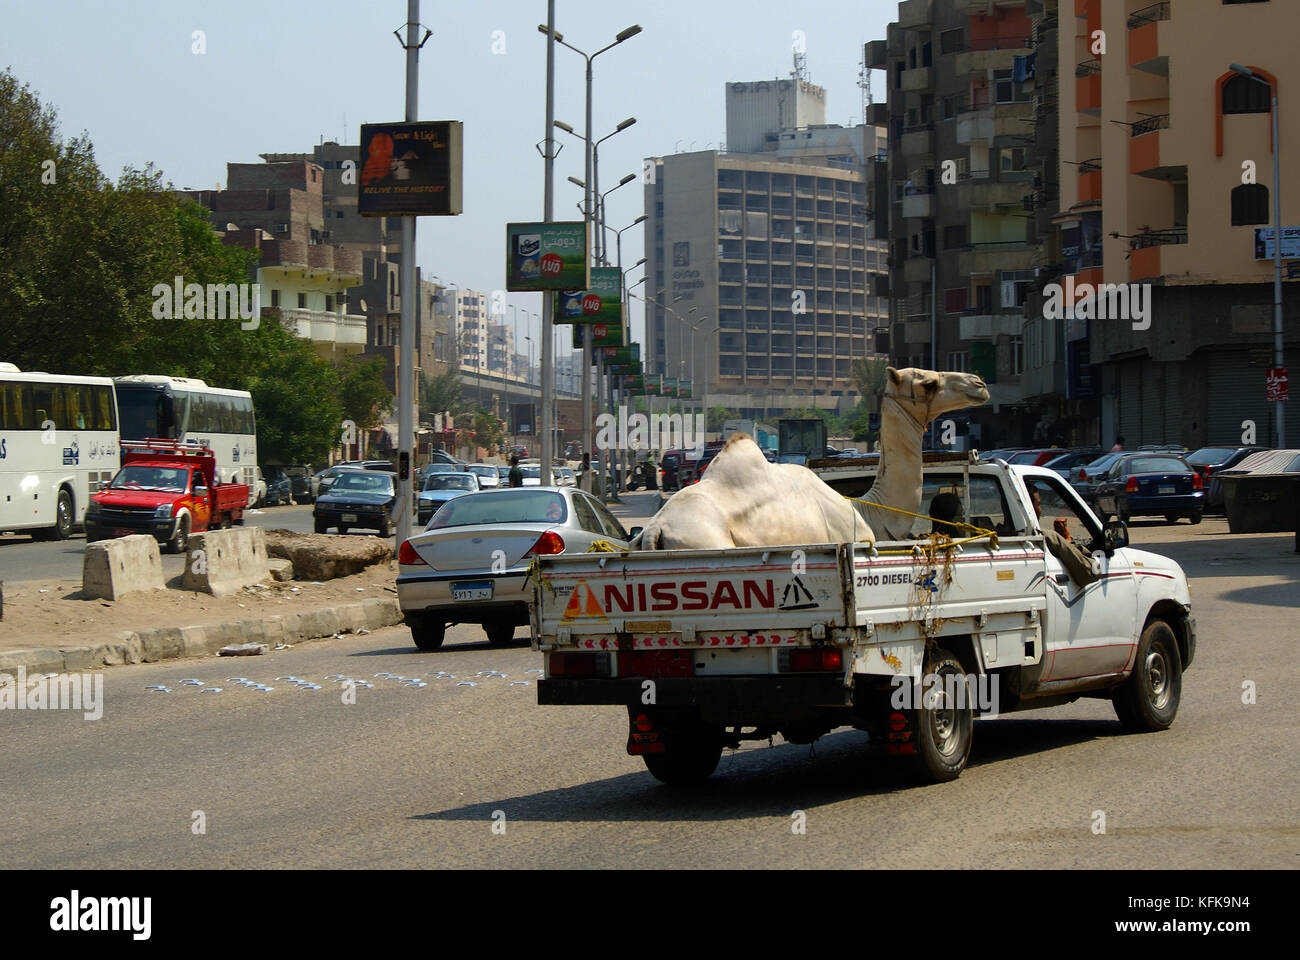 EGYPT, CAIRO - SEPTEMBER 19, 2010: a white camel with kind eyes is transported in the back of a pickup truck along - Stock Image